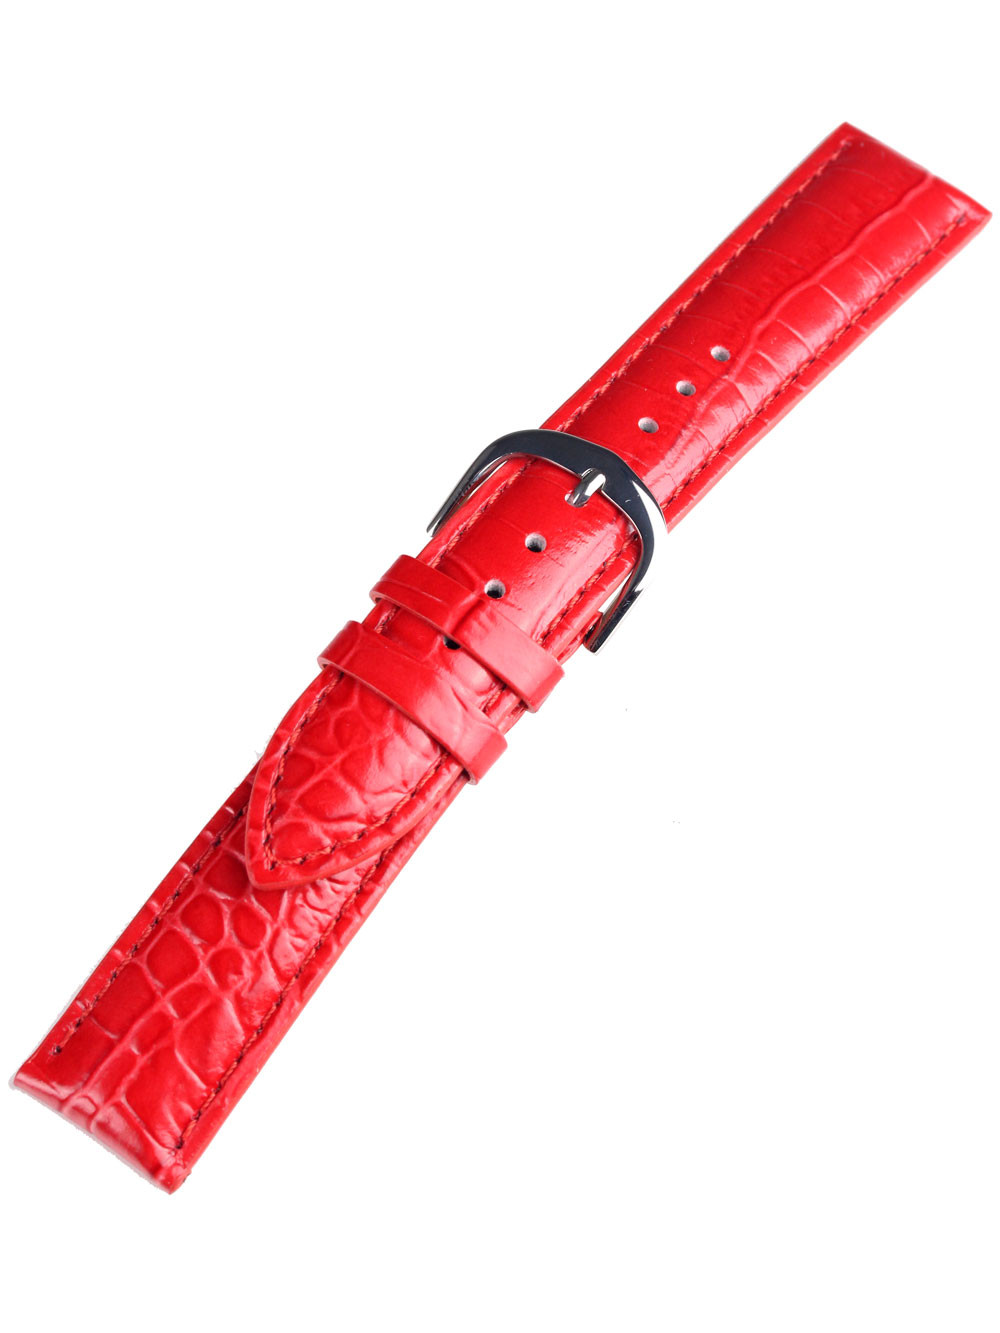 Bossart universal Replacement Strap Leather 20 mm Red, croco